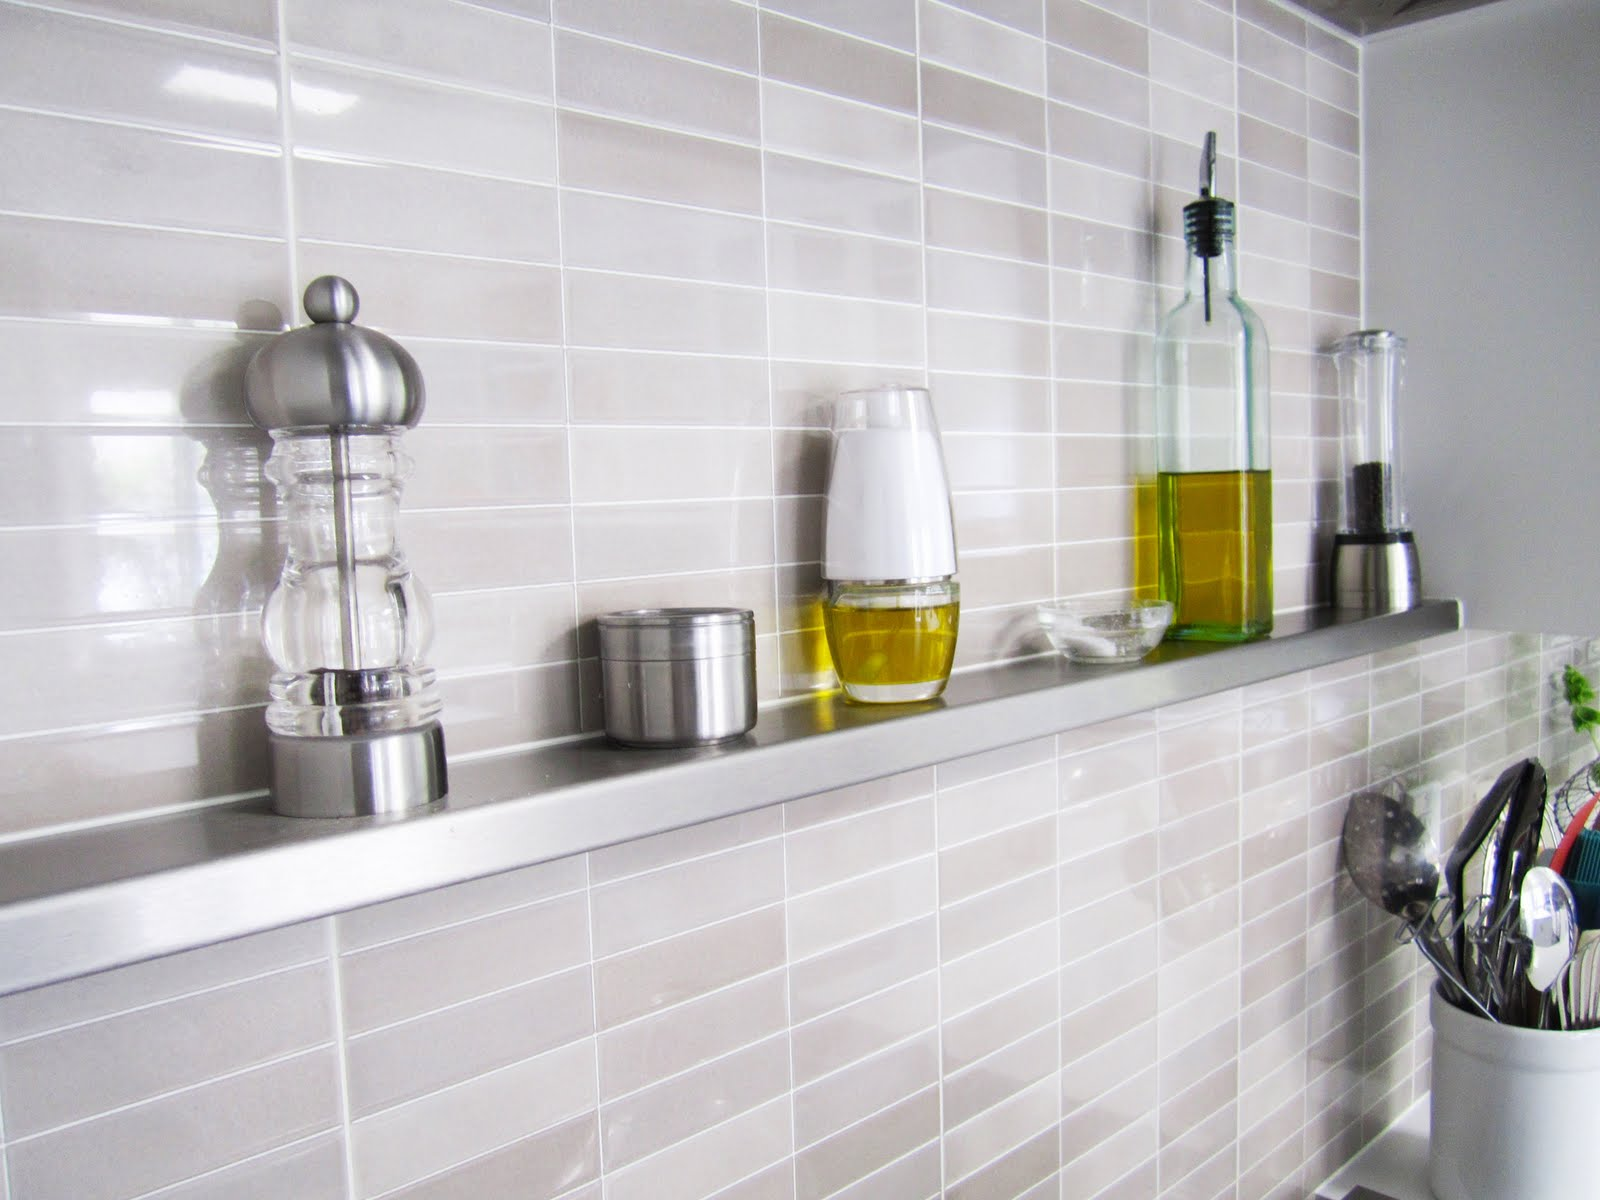 Stainless steel kitchen shelves Kitchen backsplash ideas singapore